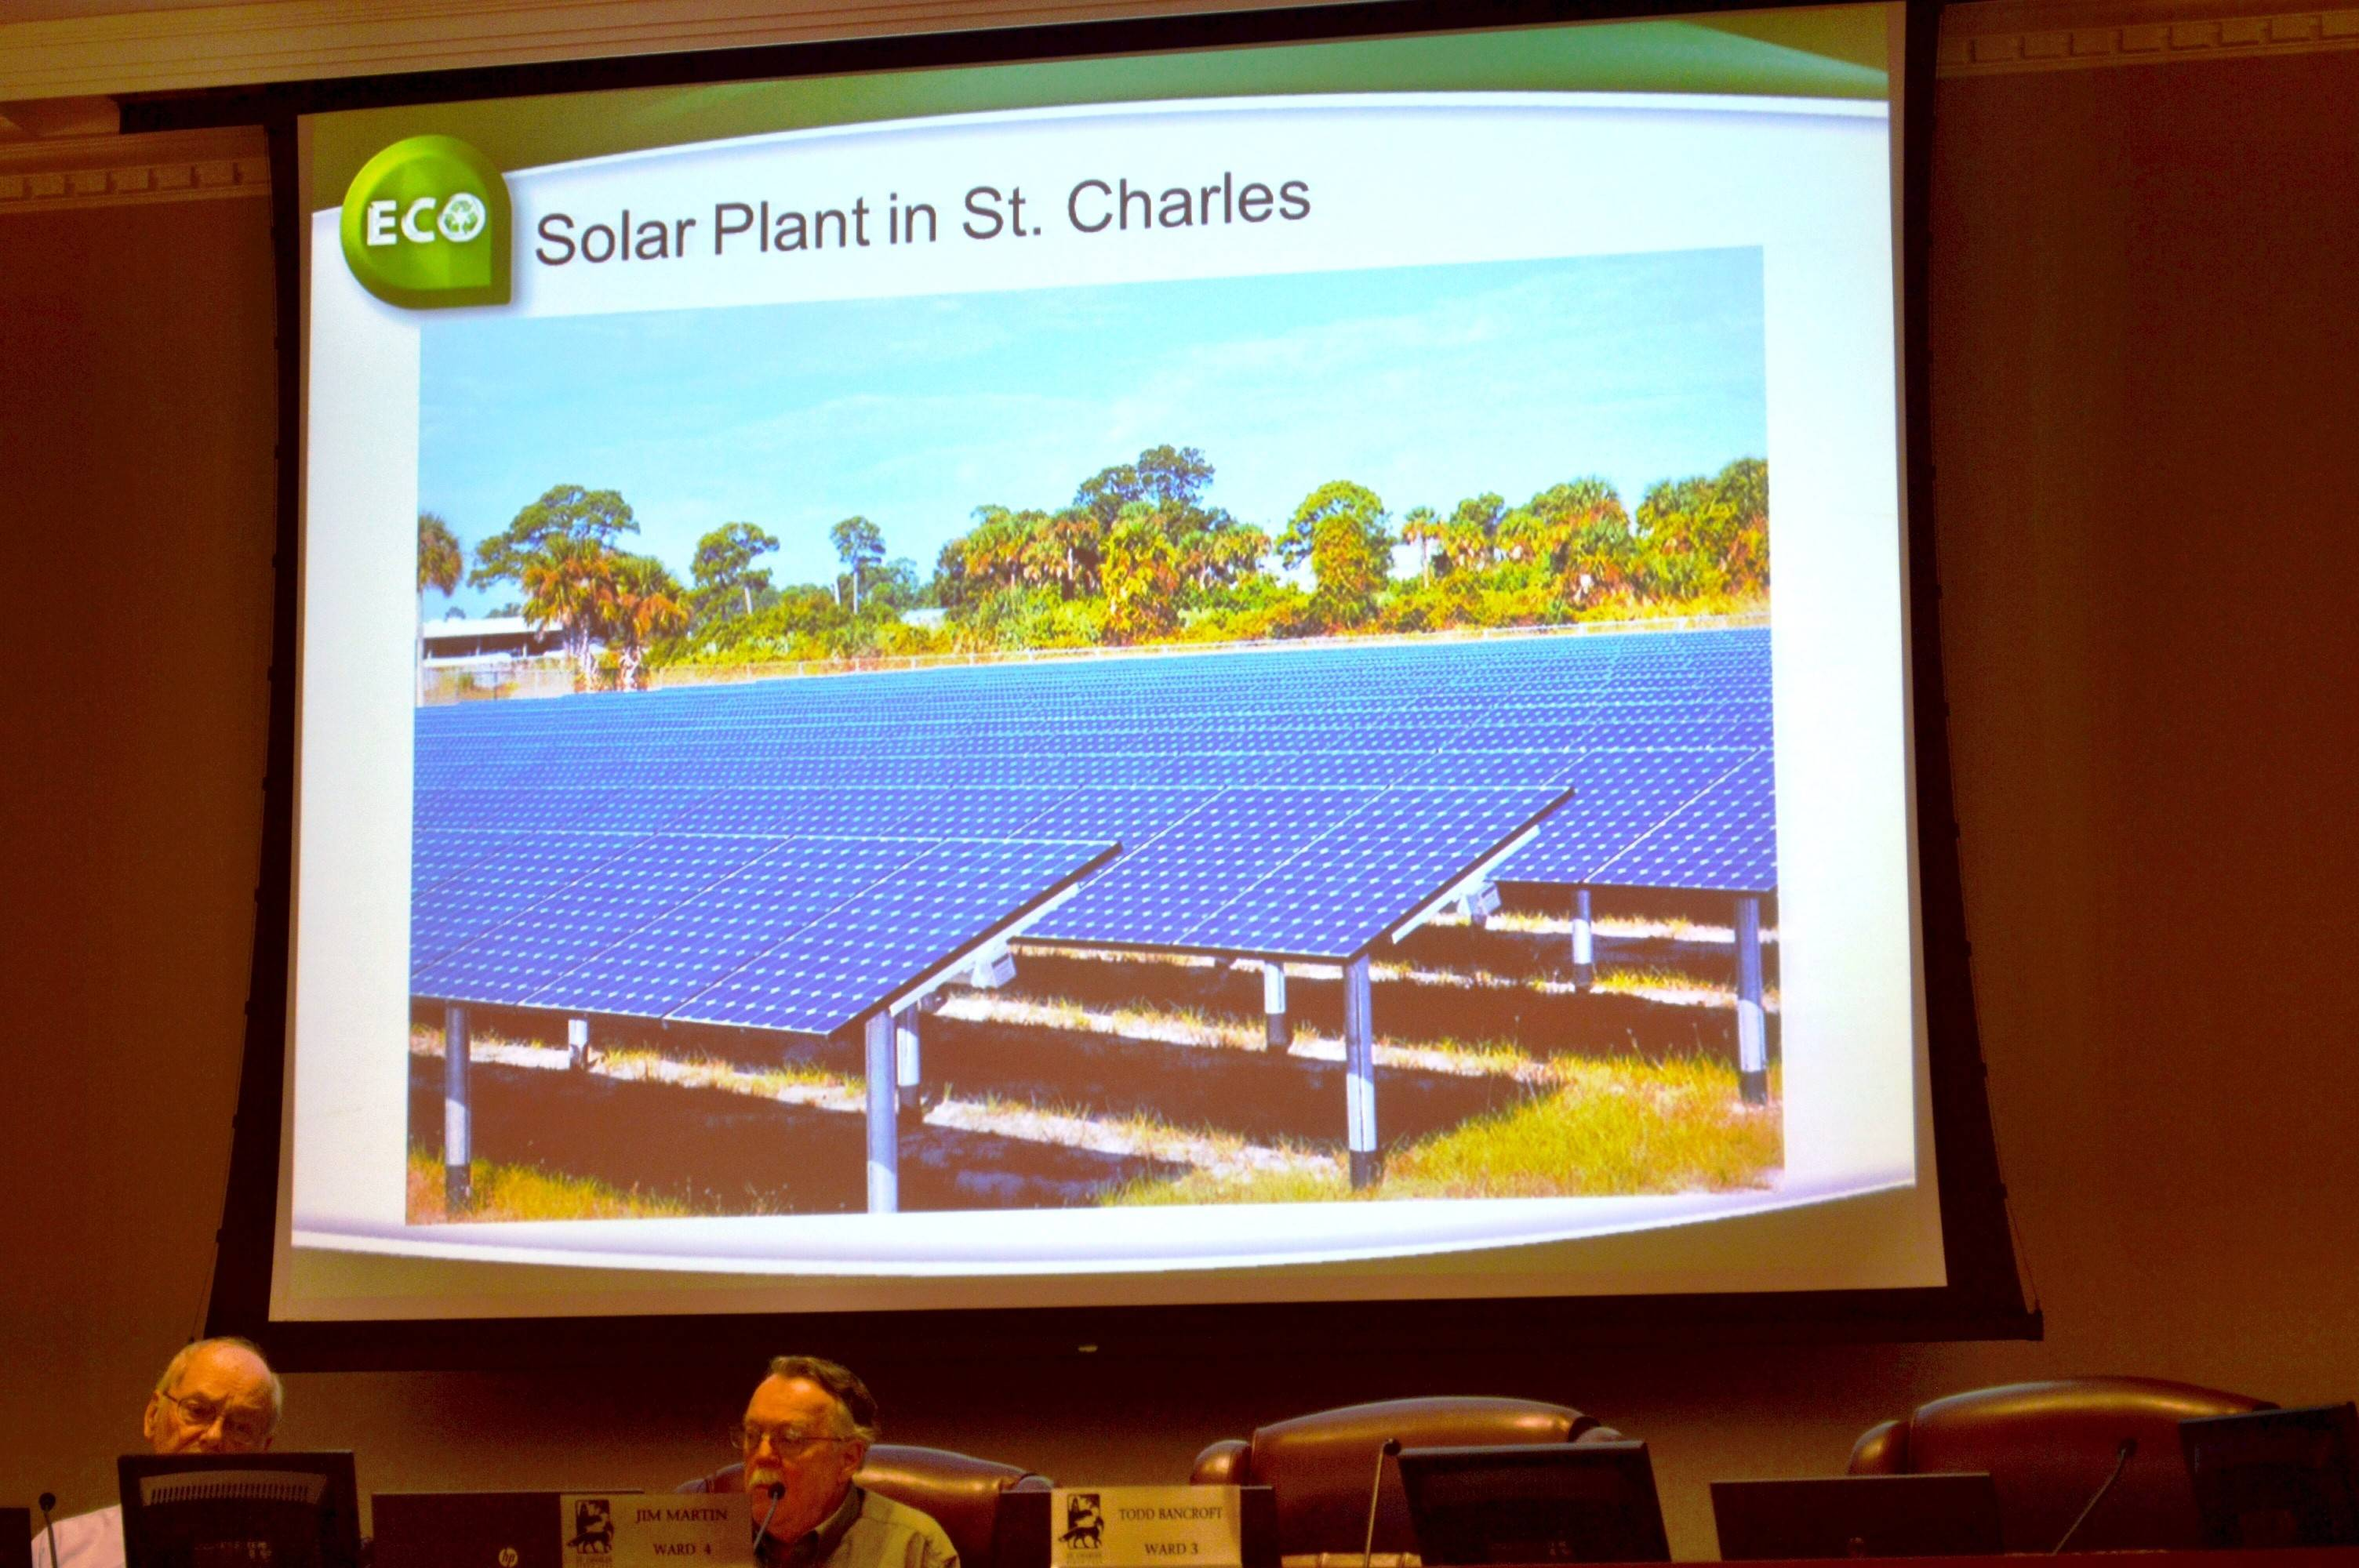 A photo of ground-mounted solar panels gave St. Charles aldermen an idea of what it might look like if city officials are successful in luring a solar plant to the city.